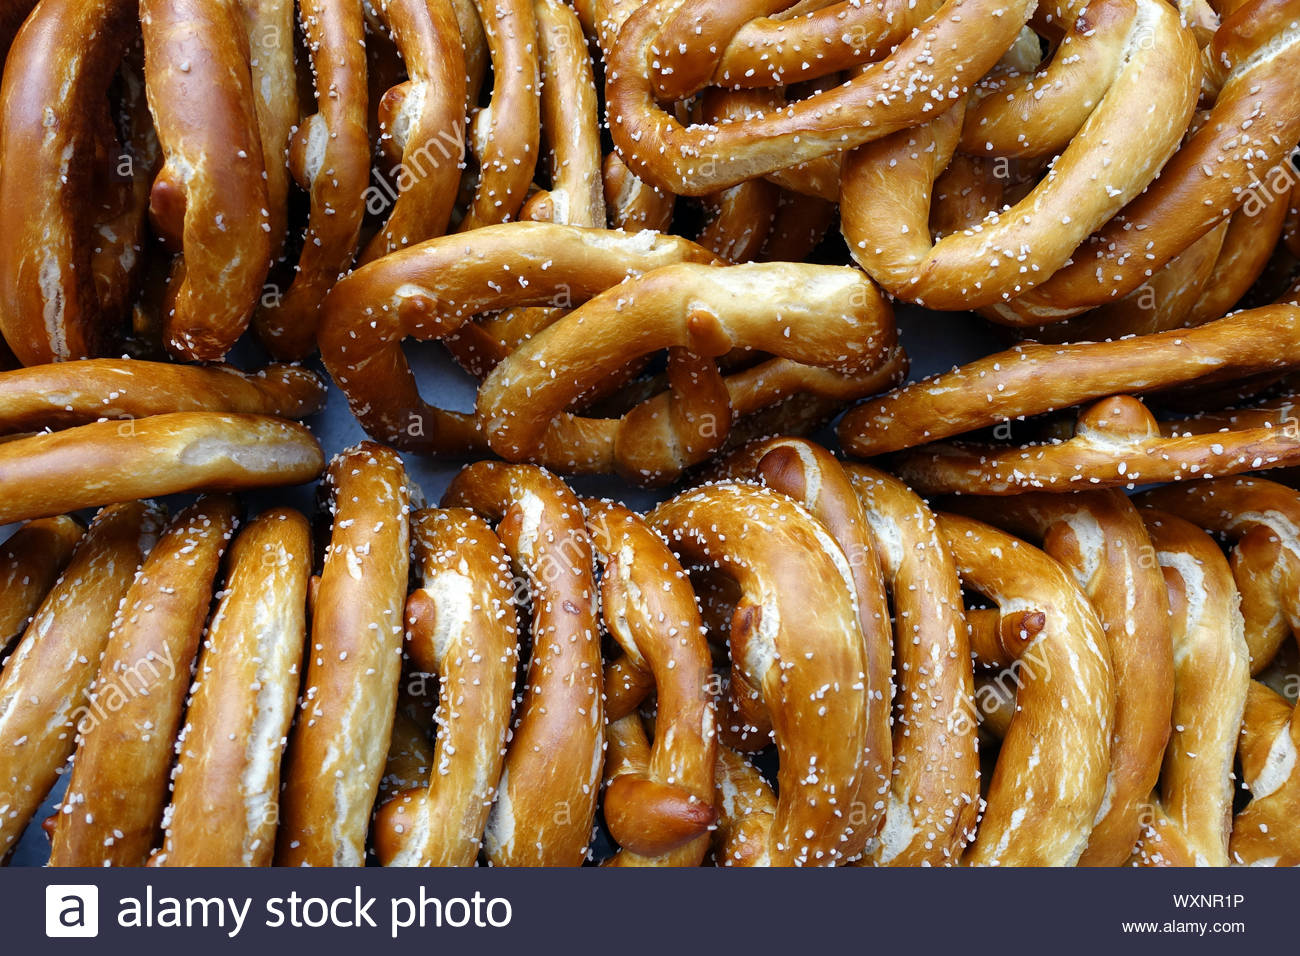 A Tray of Homemade Soft Pretzels for Sale Stock Photo